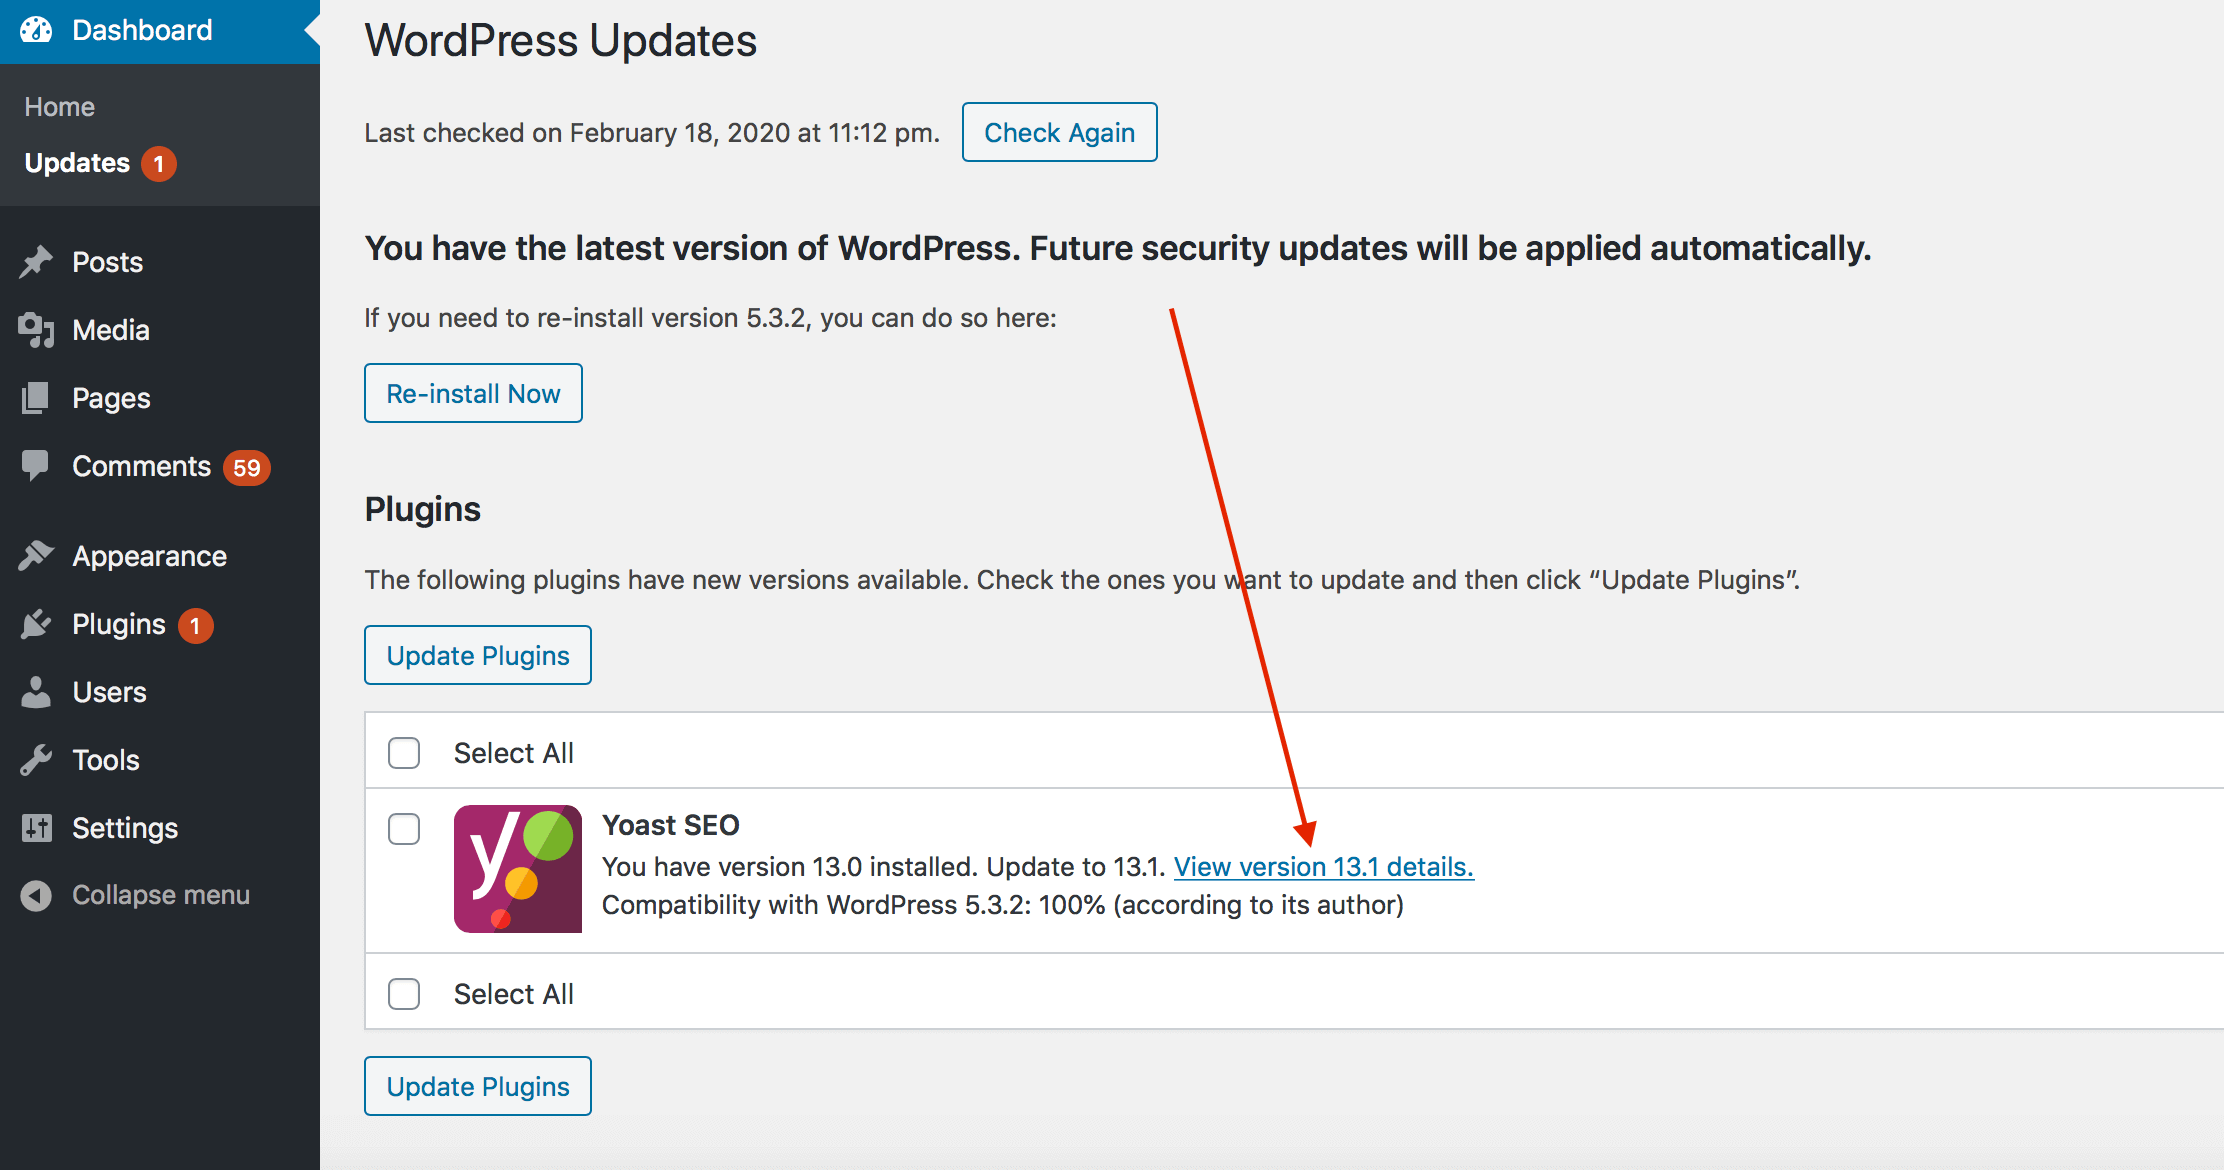 How to view the details of a wordpress plugin version